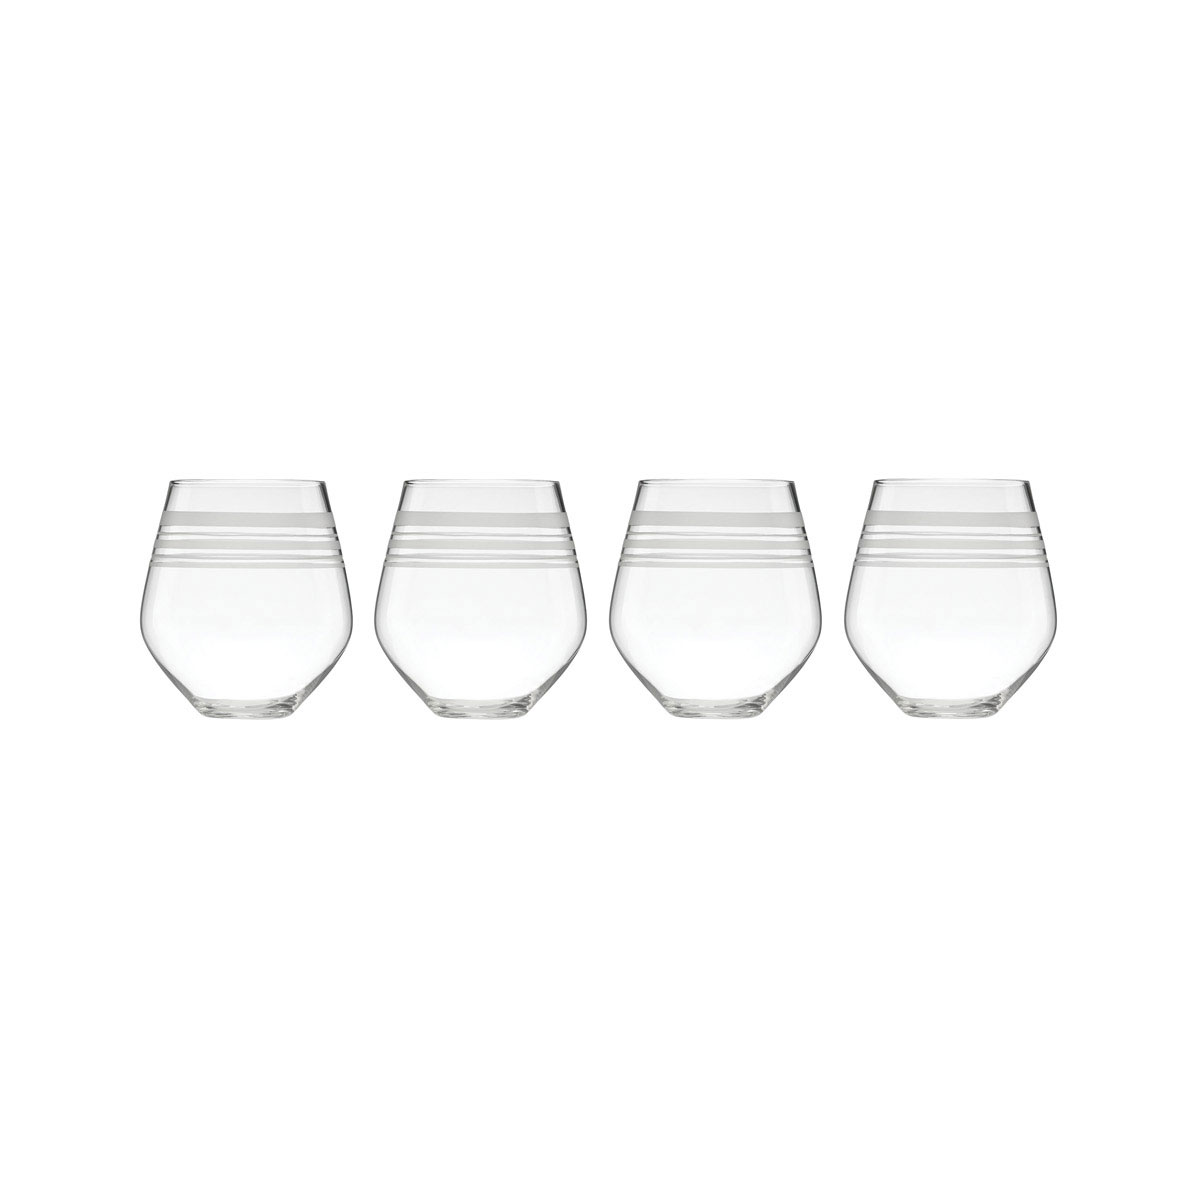 Kate Spade New York, Lenox Library Stripe Stemless Crystal Red Wine, Set of 4